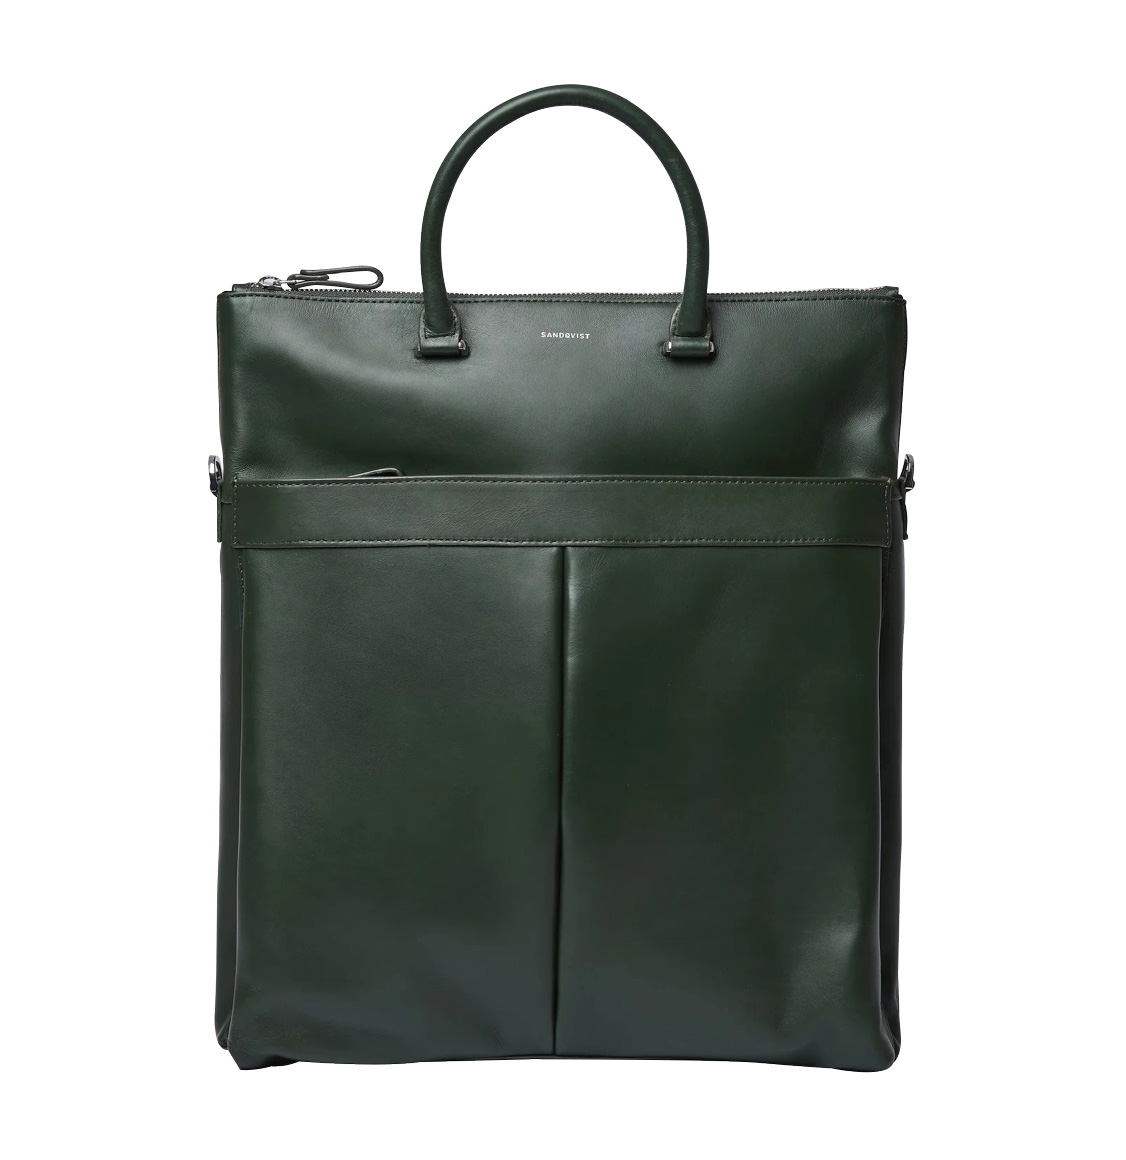 Sandqvist Andreas Green Tote Bag